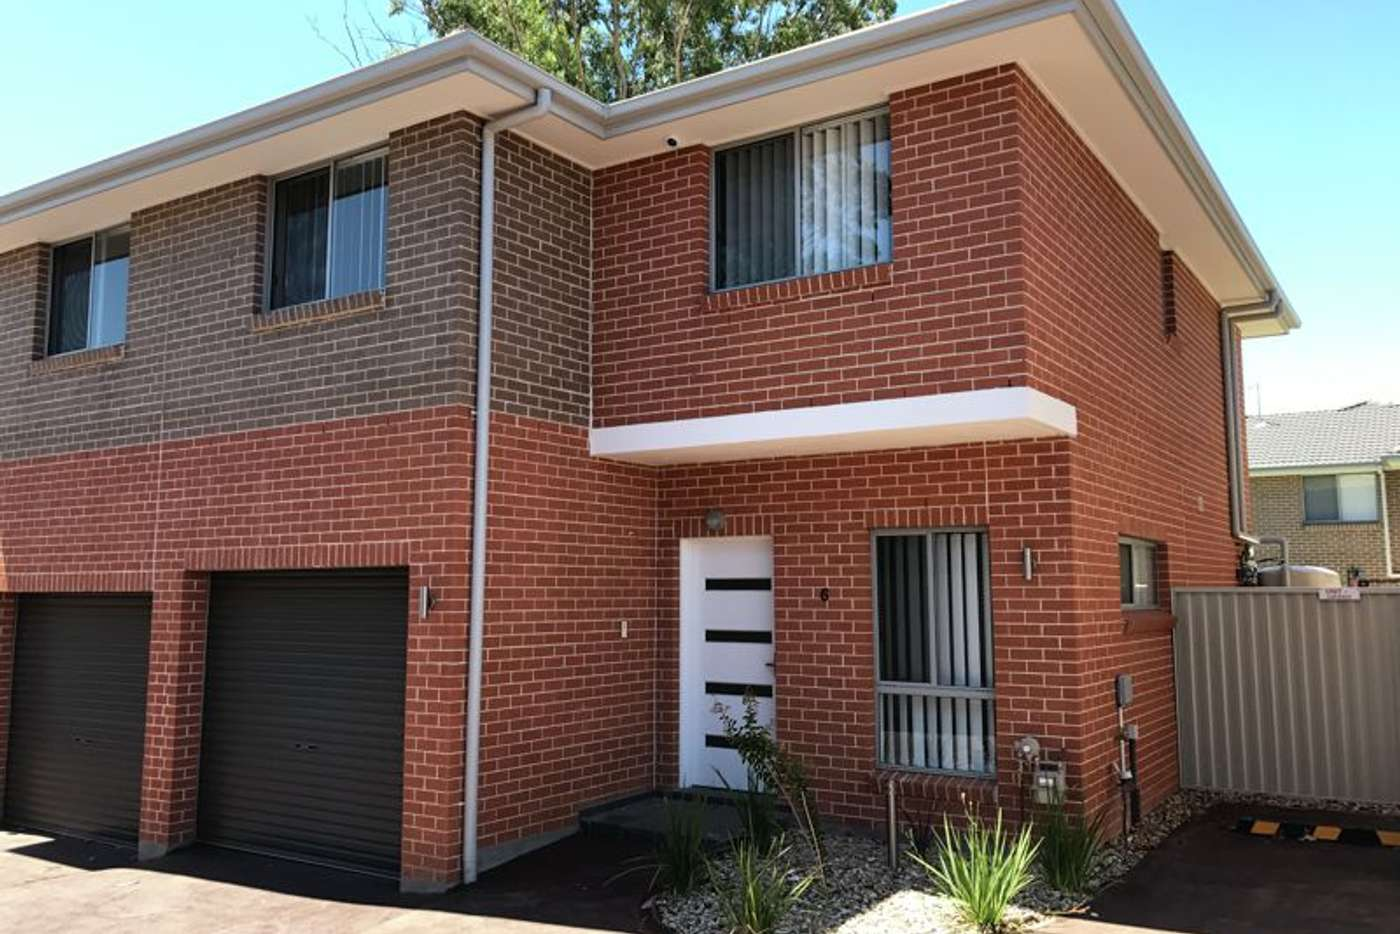 Main view of Homely house listing, 6 Sharada Glade, Woodcroft NSW 2767